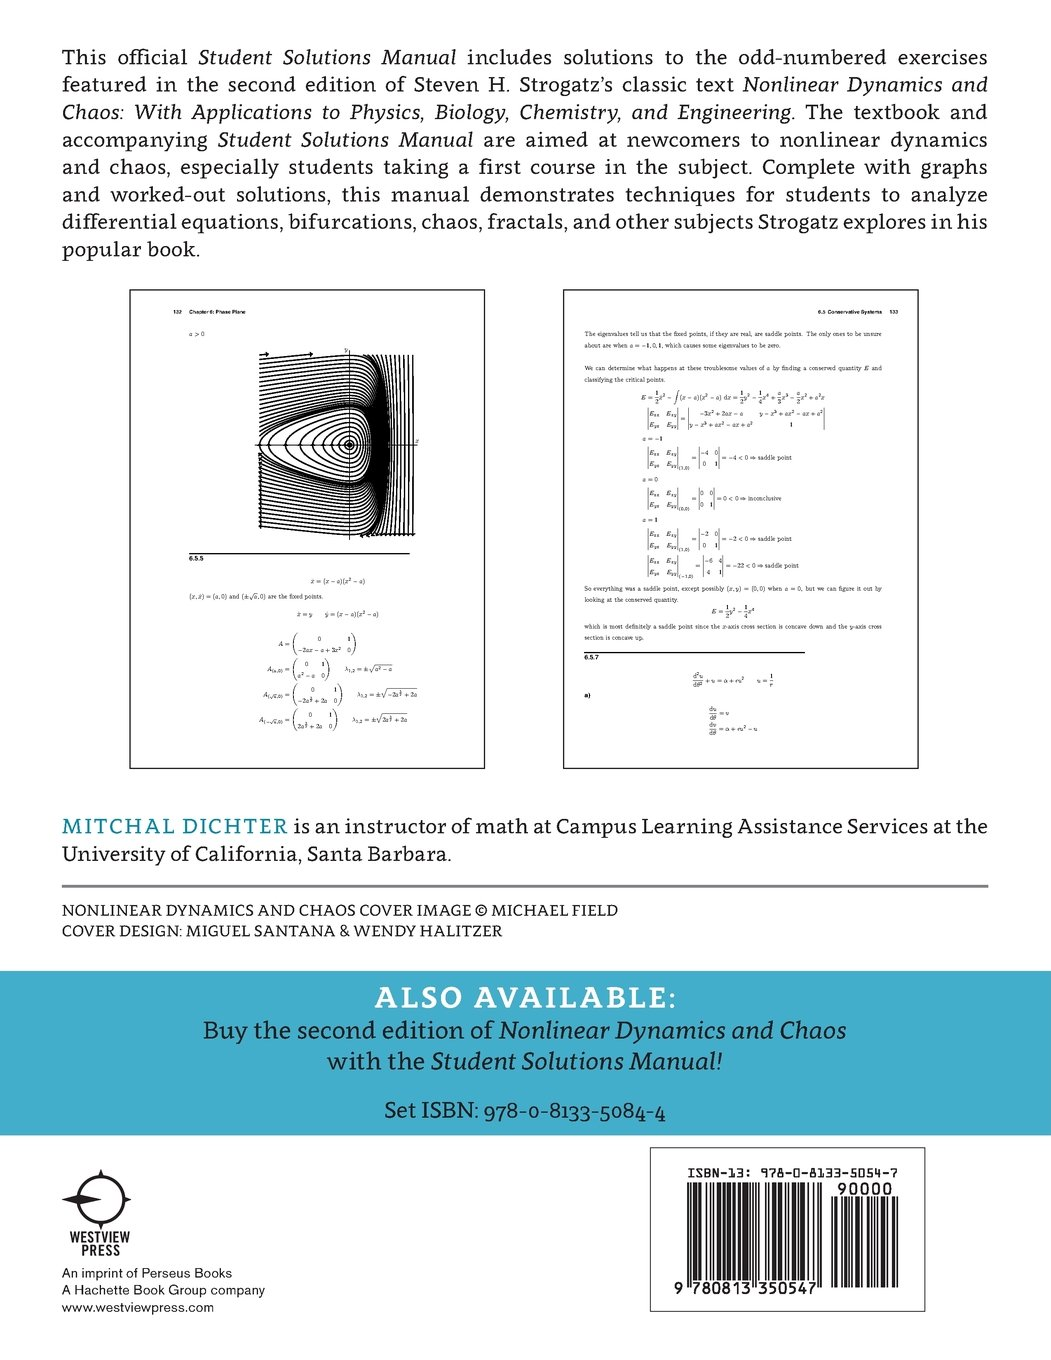 Buy Student Solutions Manual for Nonlinear Dynamics and Chaos, 2nd edition:  Volume 2 Book Online at Low Prices in India   Student Solutions Manual for  ...